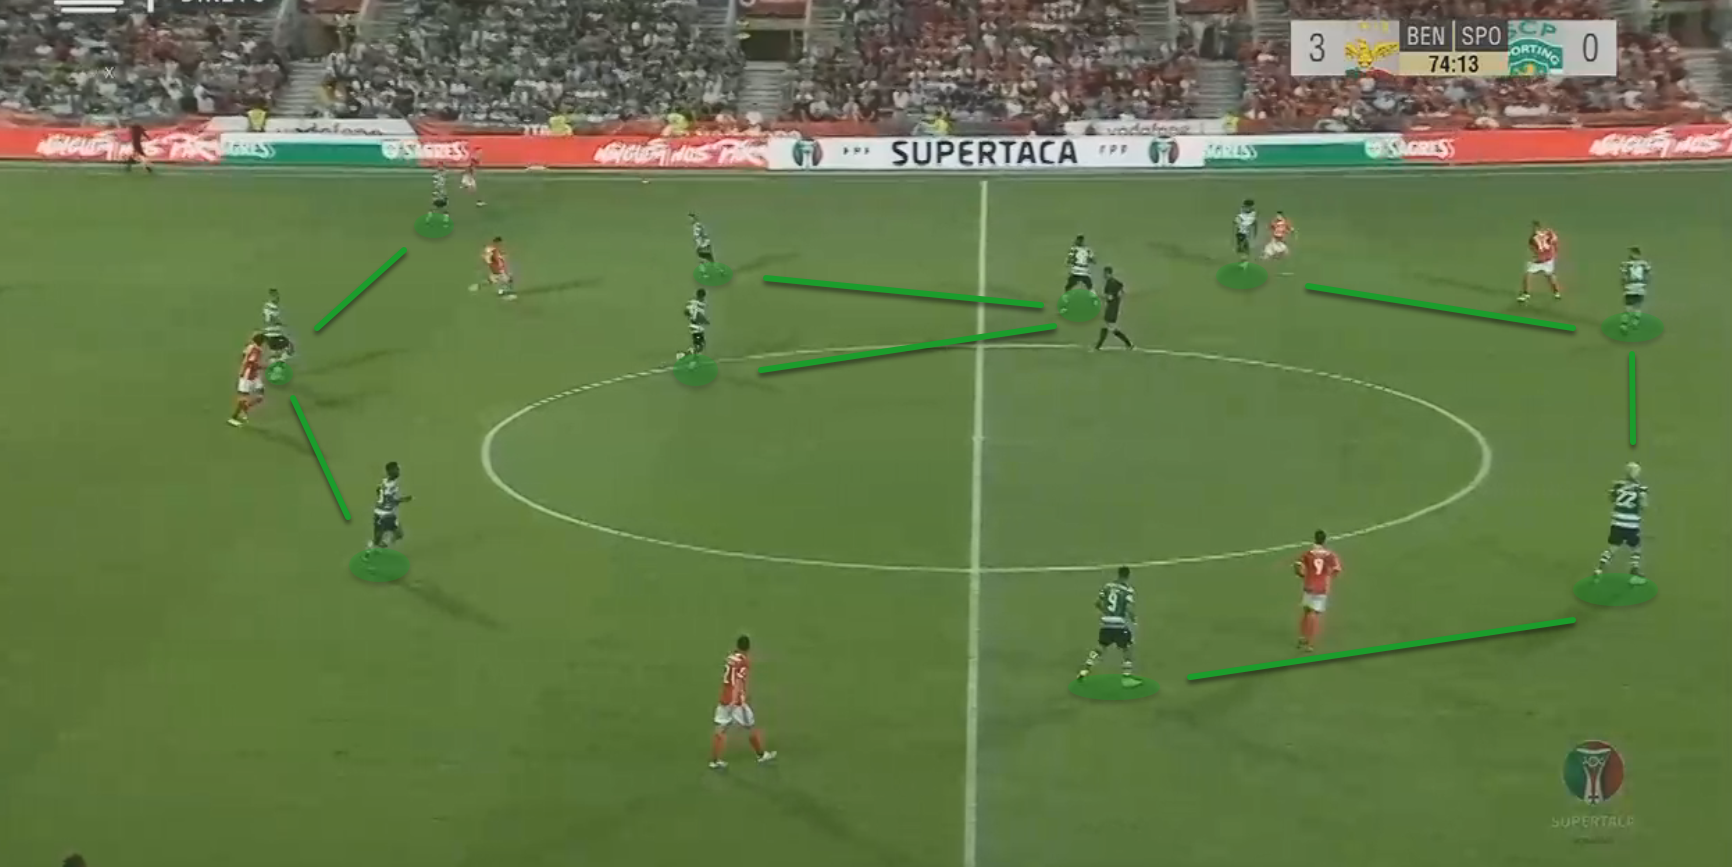 Portuguese Super Cup 2019: Benfica vs Sporting CP - tactical analysis tactics